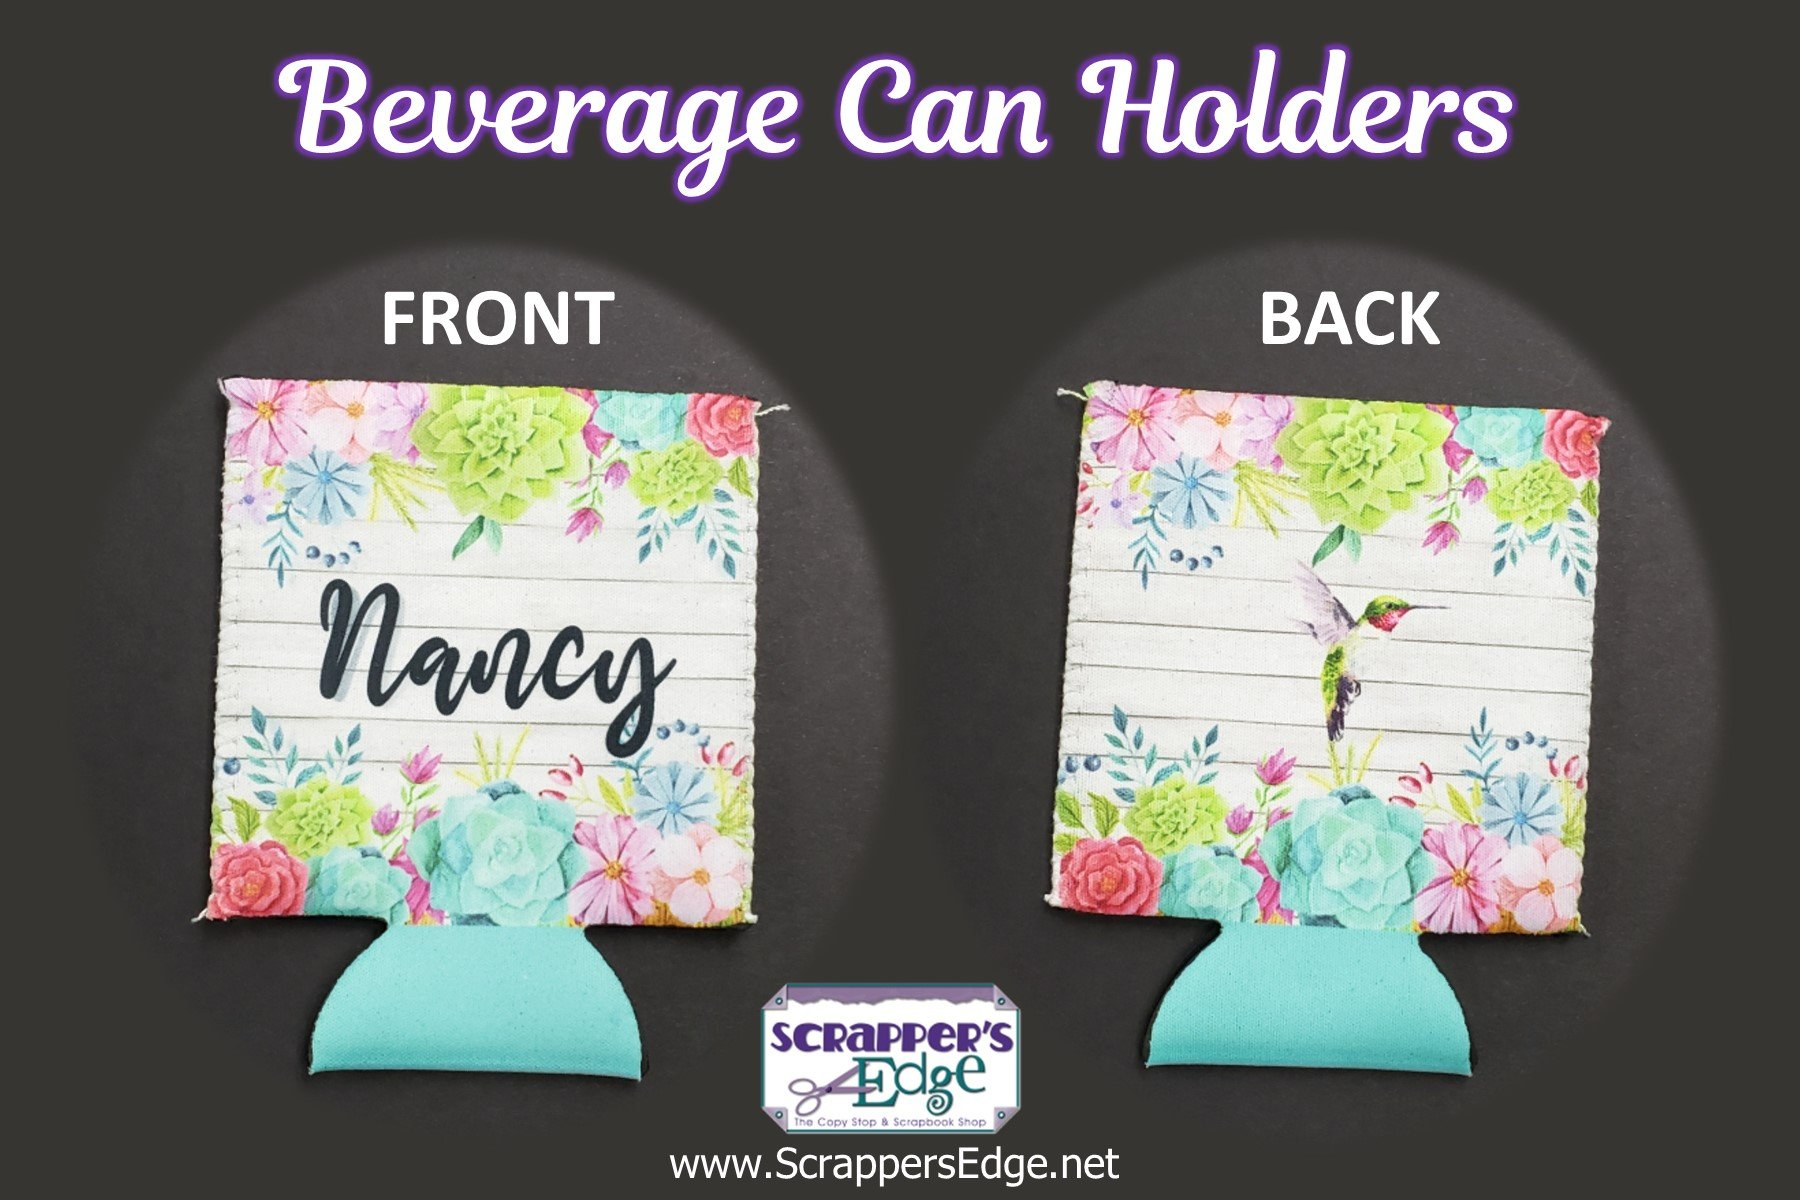 Personalized Beverage Can Holder